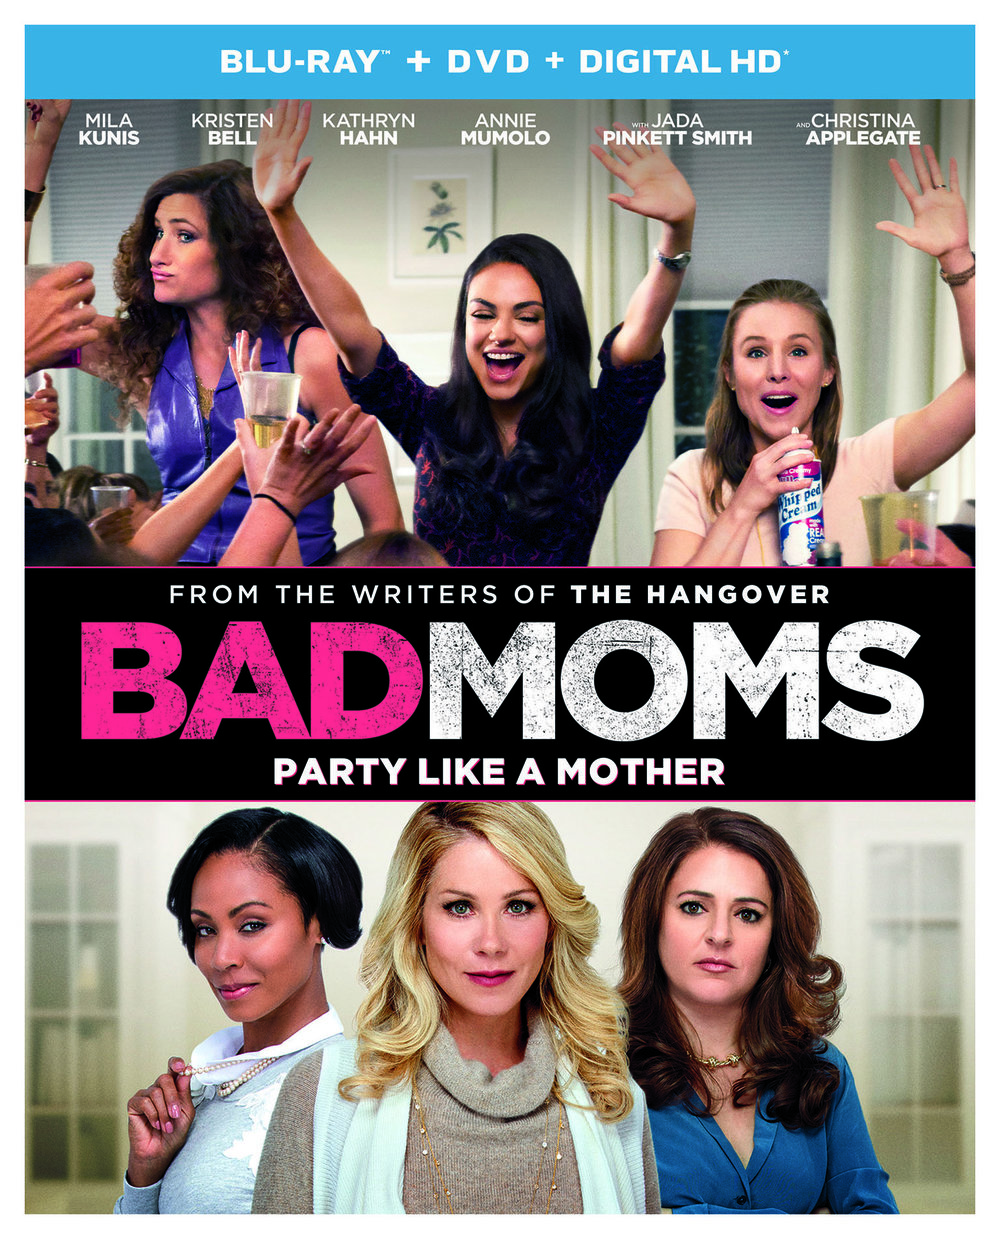 "In this outrageous comedy from the writers of  The Hangover , Amy (Mila Kunis) has a seemingly perfect life - a great marriage, over-achieving kids, beautiful home and a career. However she's over-worked, over-committed and exhausted to the point that she's about to snap. Fed up, she joins forces with two other over-stressed moms (Kristen Bell and Kathryn Hahn) on a quest to liberate themselves from conventional responsibilities – going on a wild, un-mom-like binge of long overdue freedom, fun and self-indulgence – putting them on a collision course with PTA Queen Bee Gwendolyn (Christina Applegate) and her clique of devoted perfect moms (Jada Pinkett Smith and Annie Mumolo). See the movie that critics are cheering as ""…a funny, giddy, sentimental laugh-in…"" - Manohla Dargis,  The New York Times ."